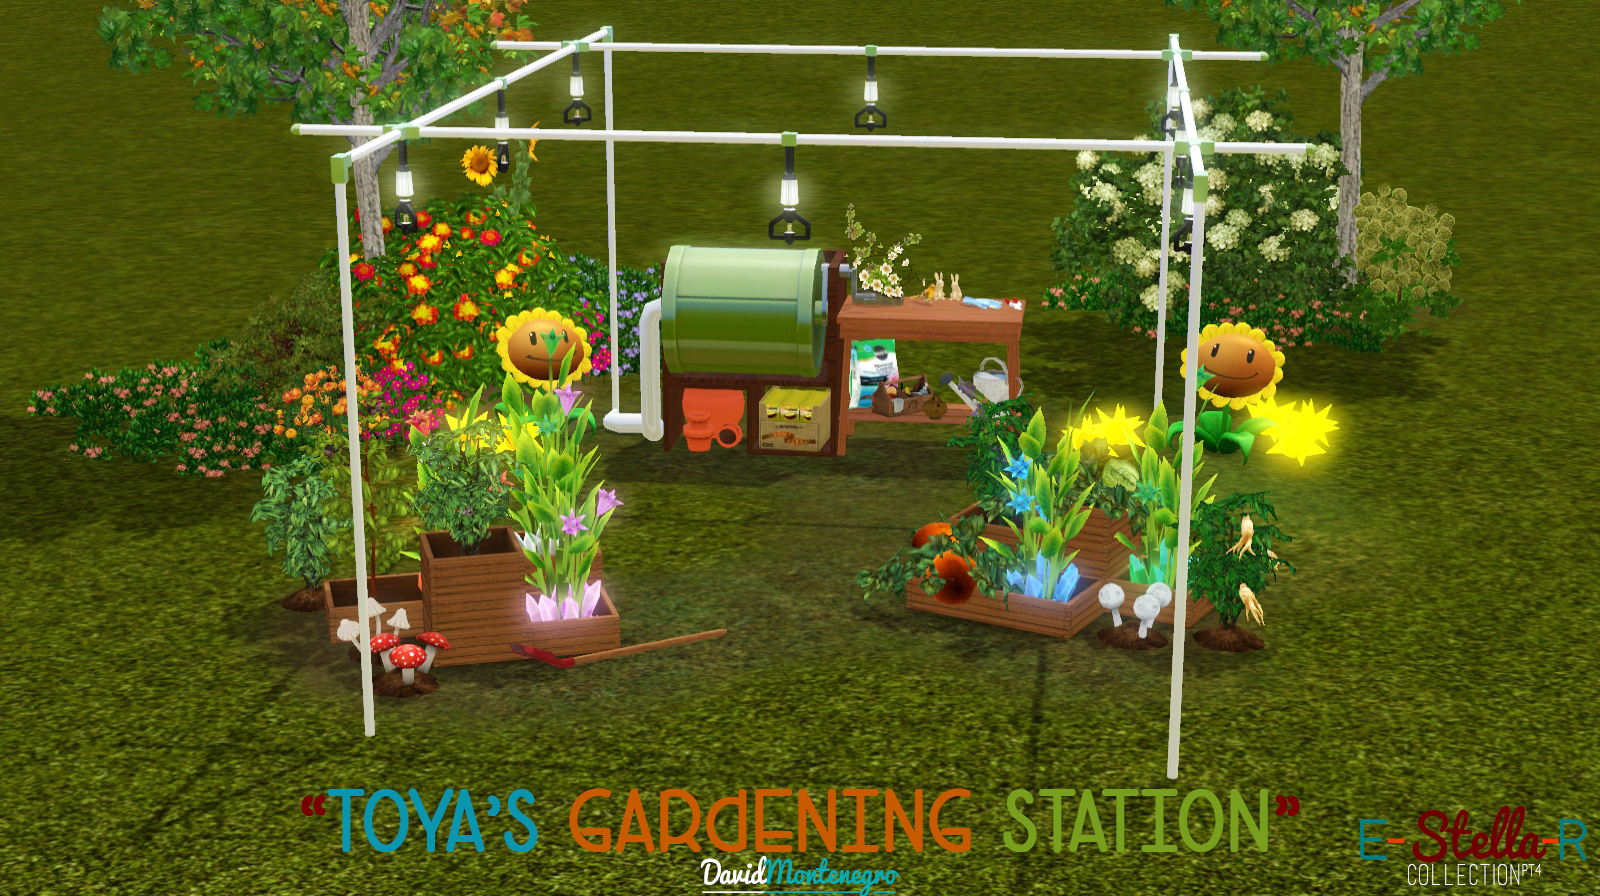 david montenegro toya 39 s gardening station a new one for